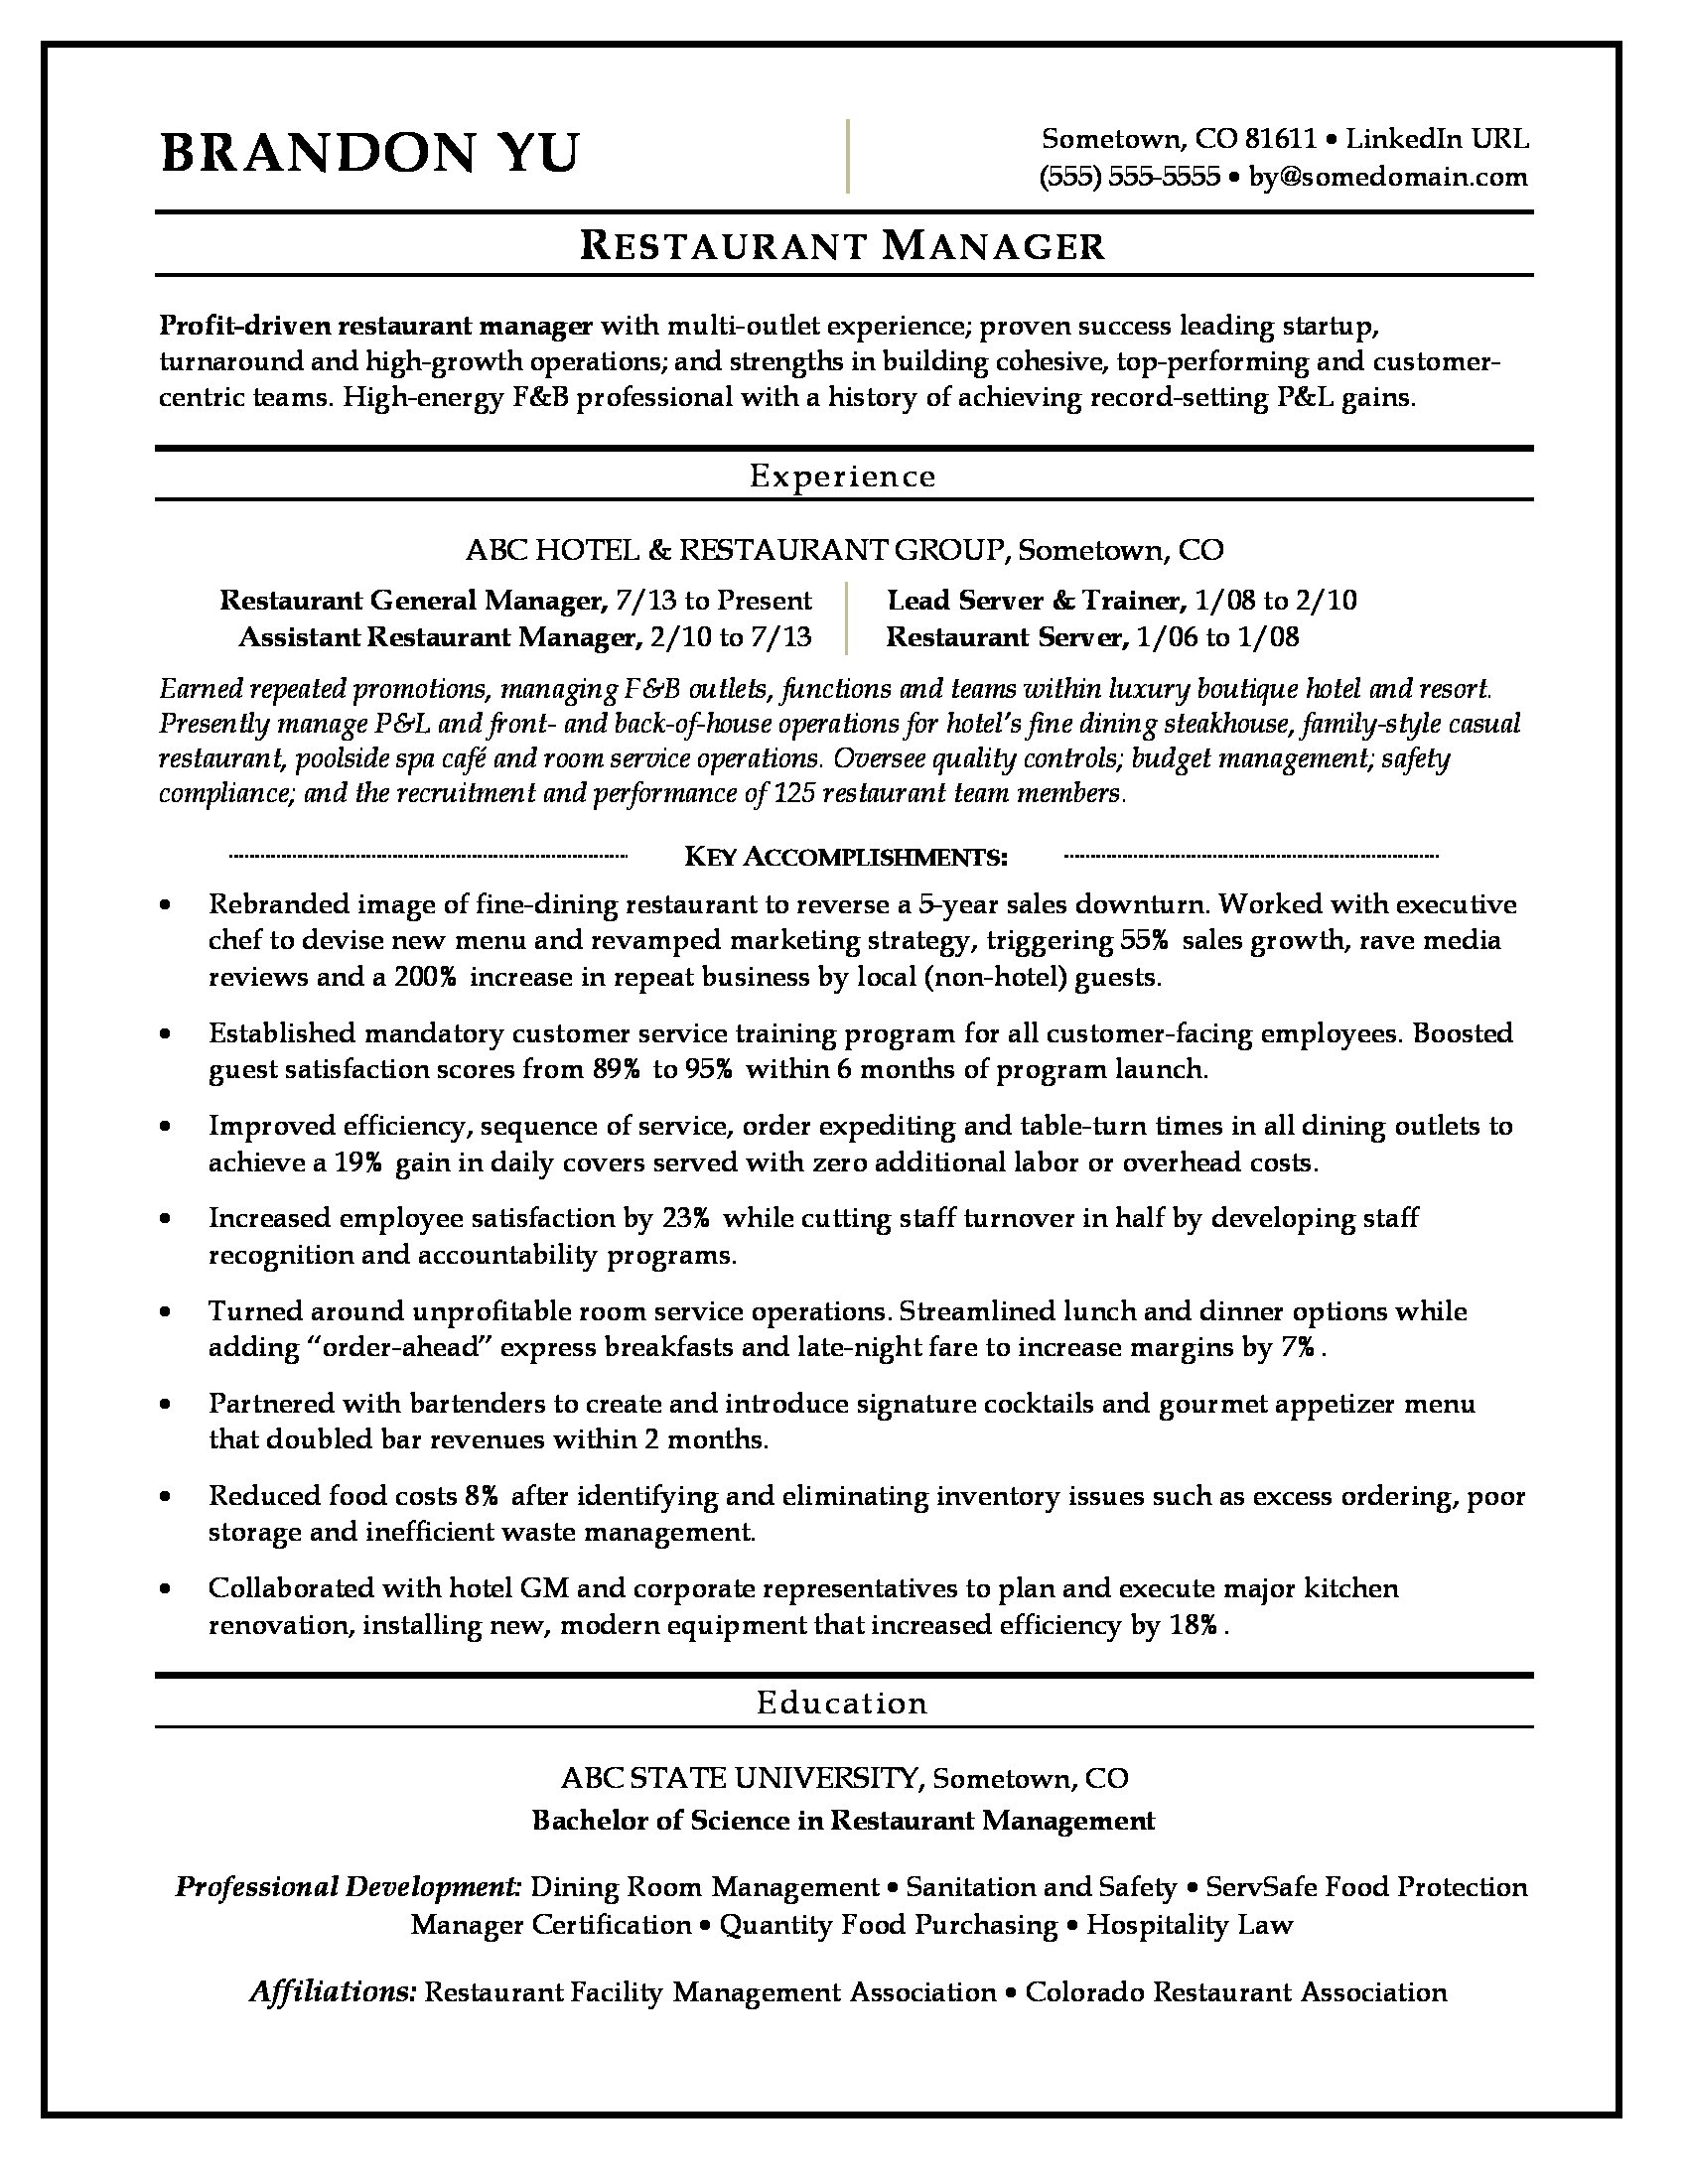 Restaurant manager resume sample monster sample resume for a restaurant manager thecheapjerseys